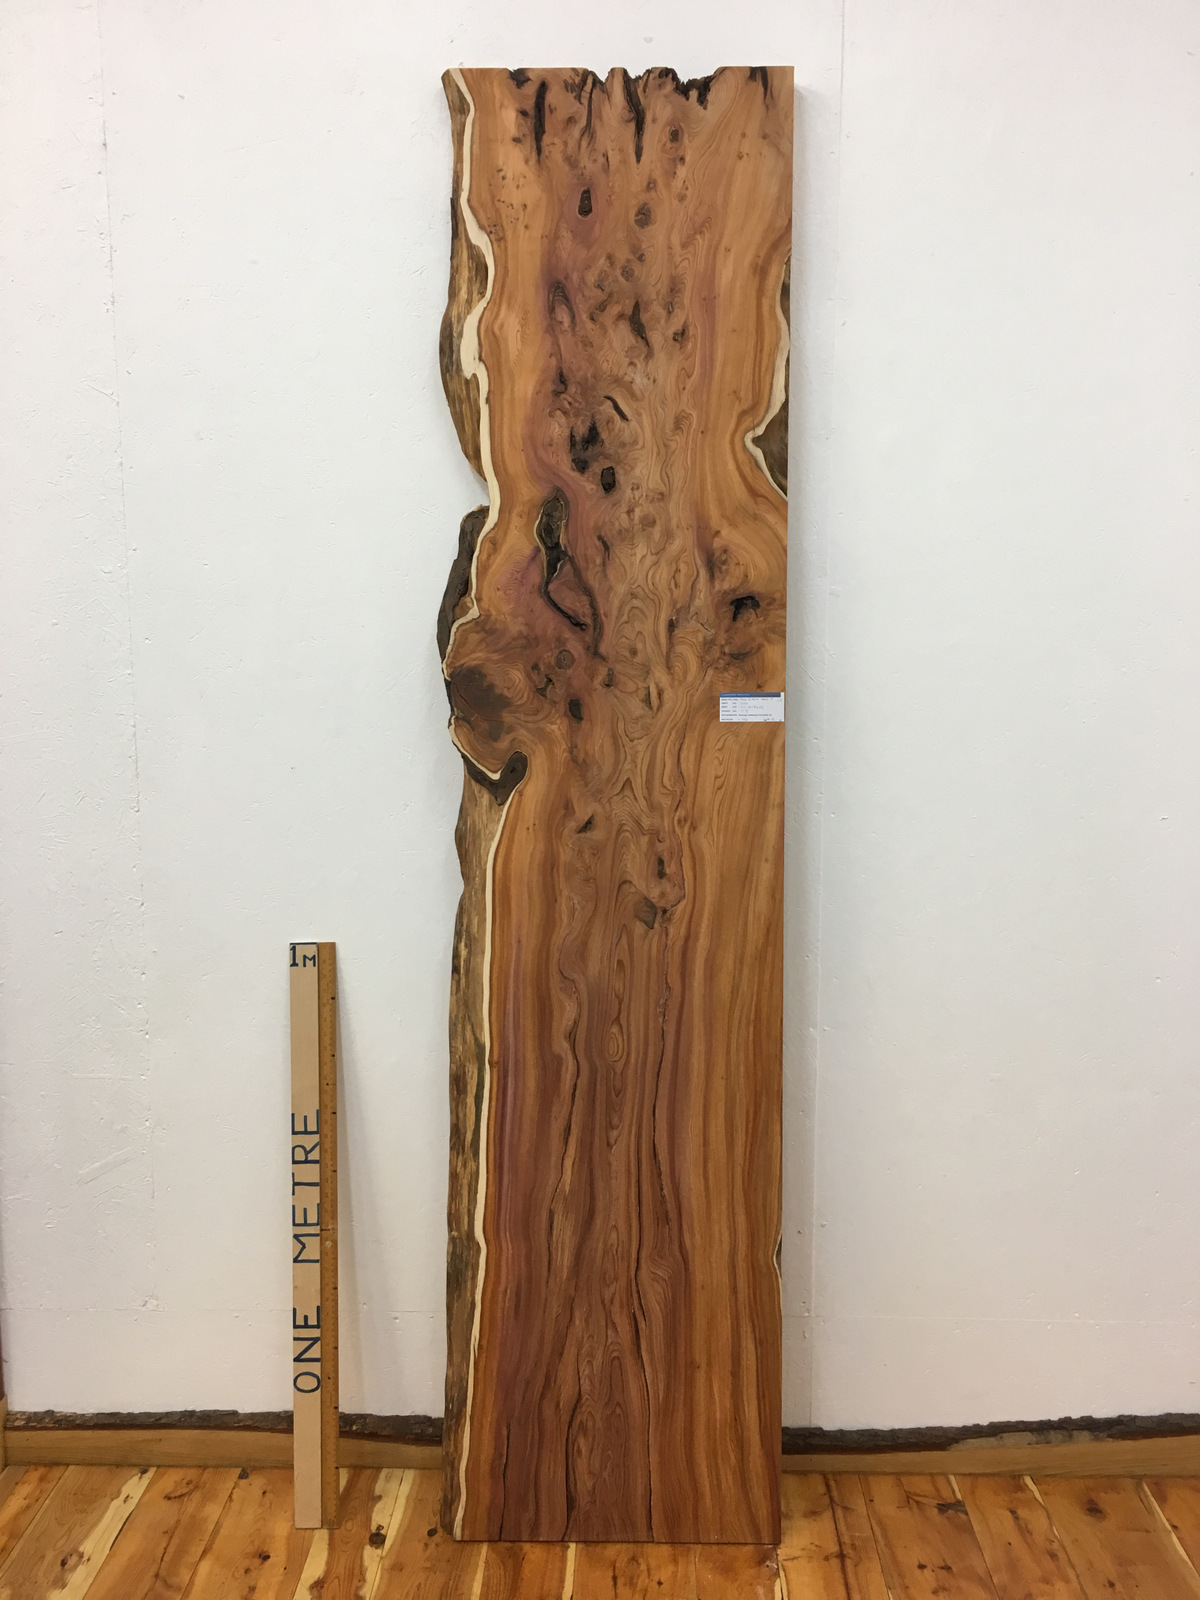 YEW Single Waney Natural Live Edge Board 1462-5